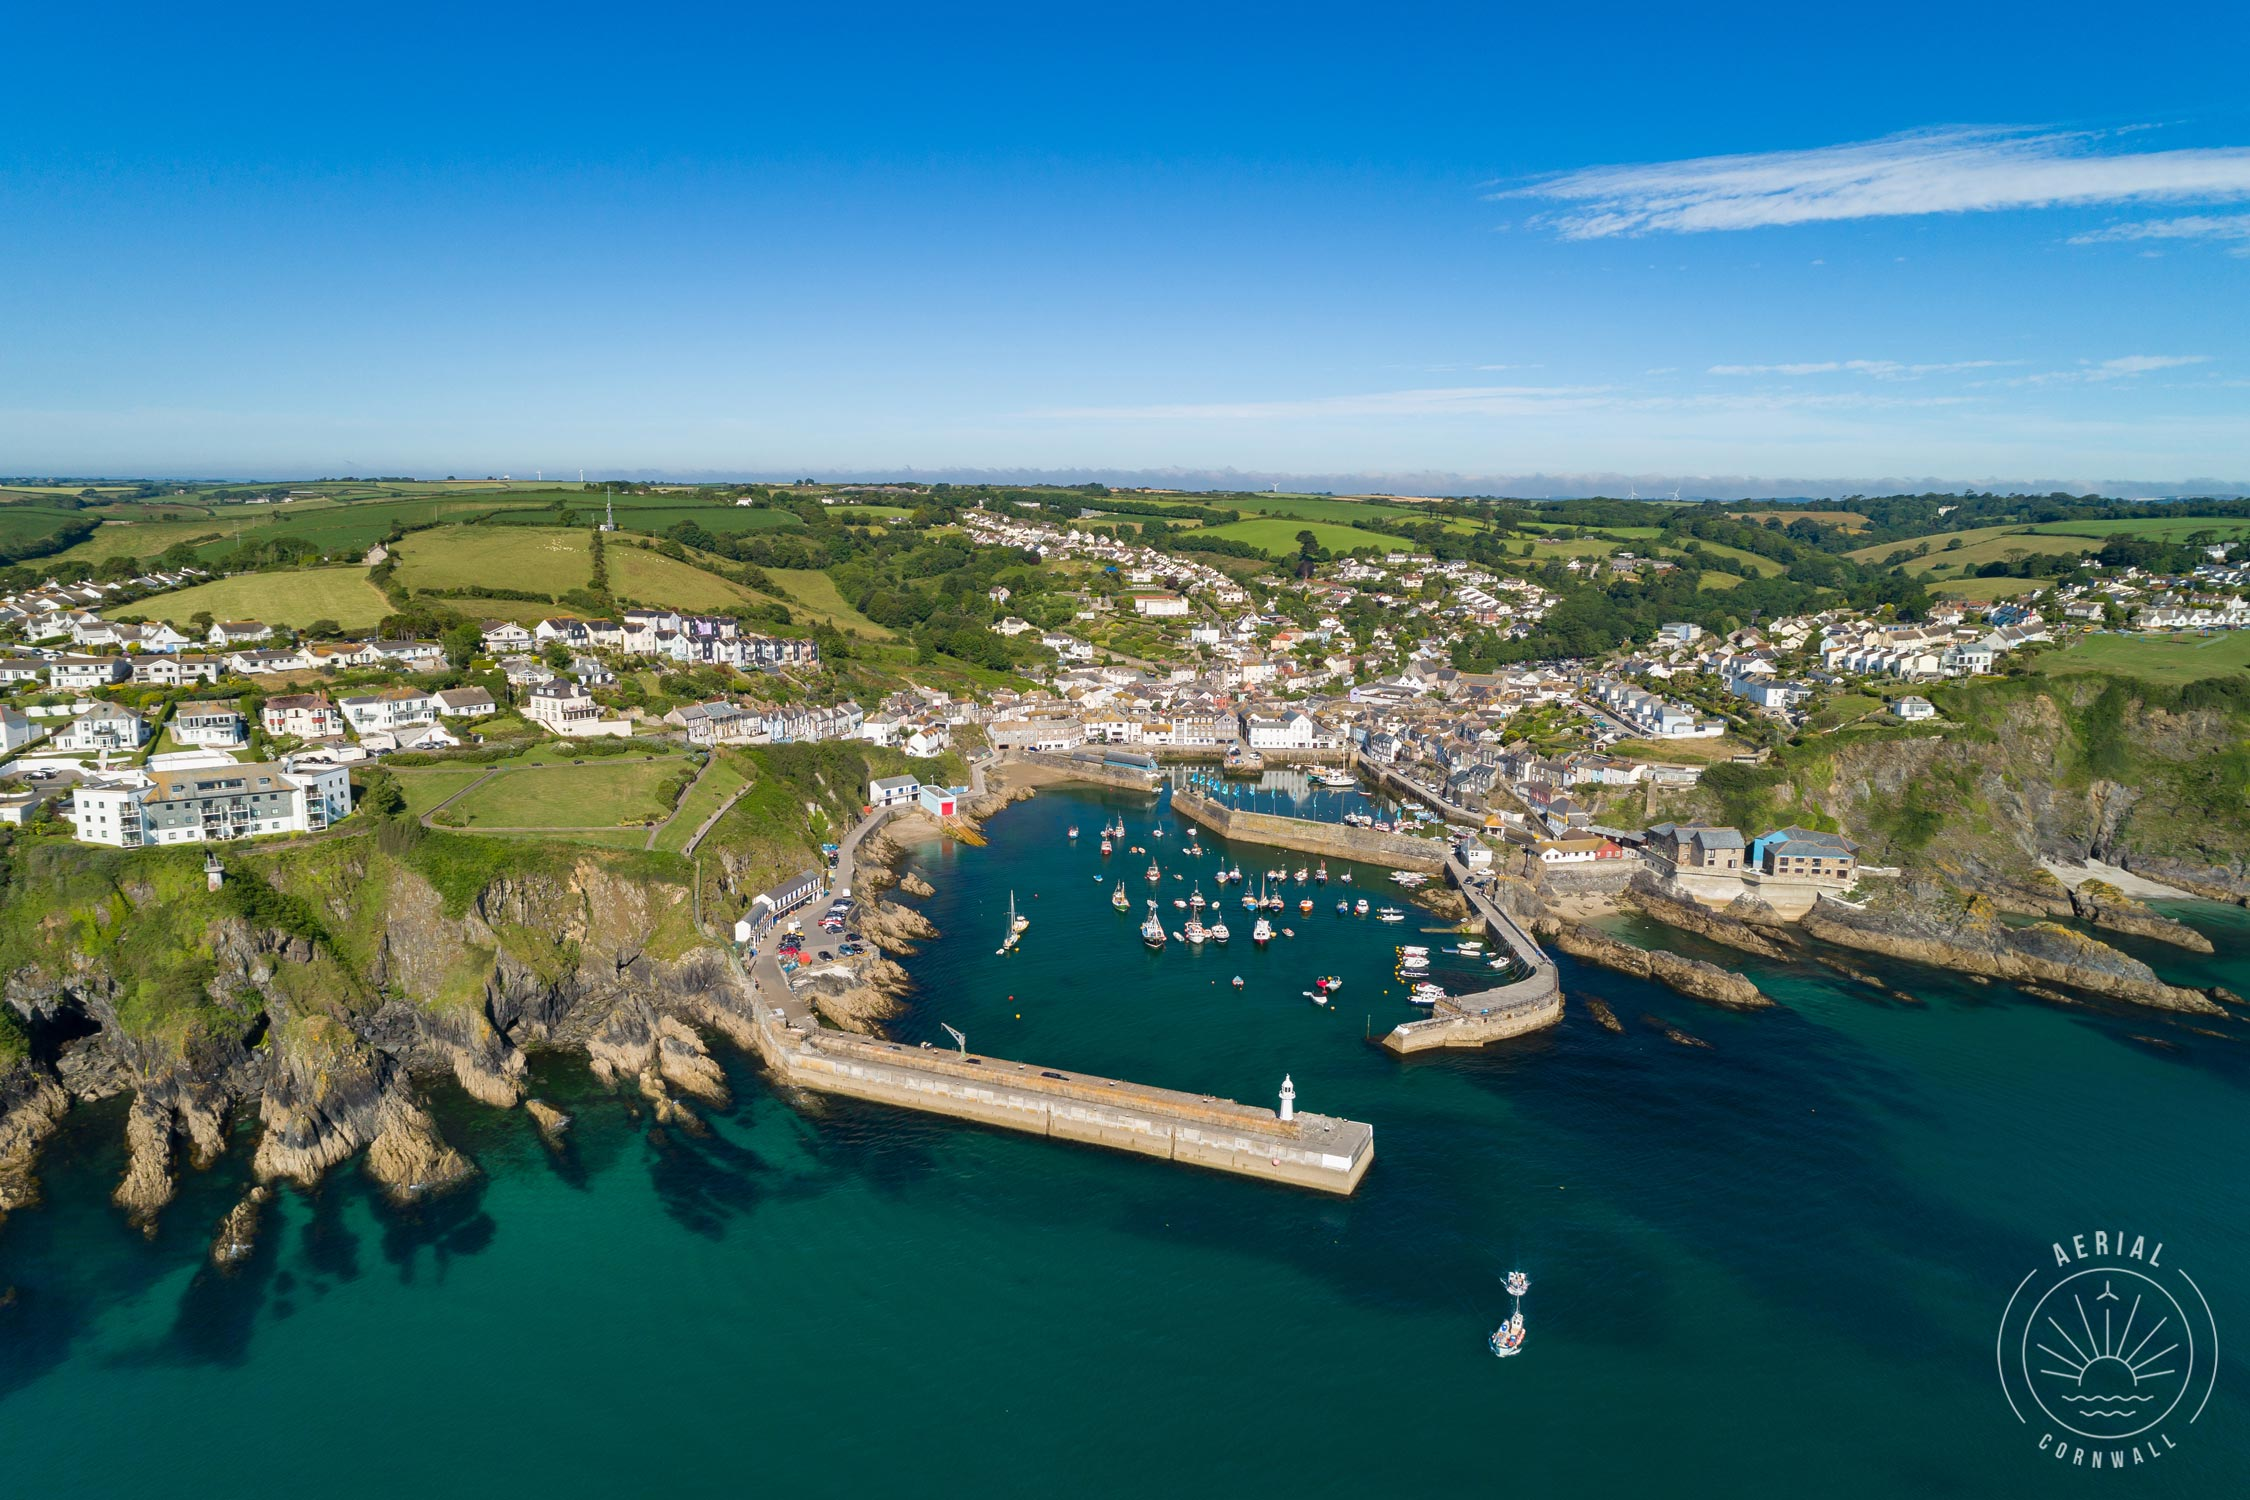 Location: Mevagissey